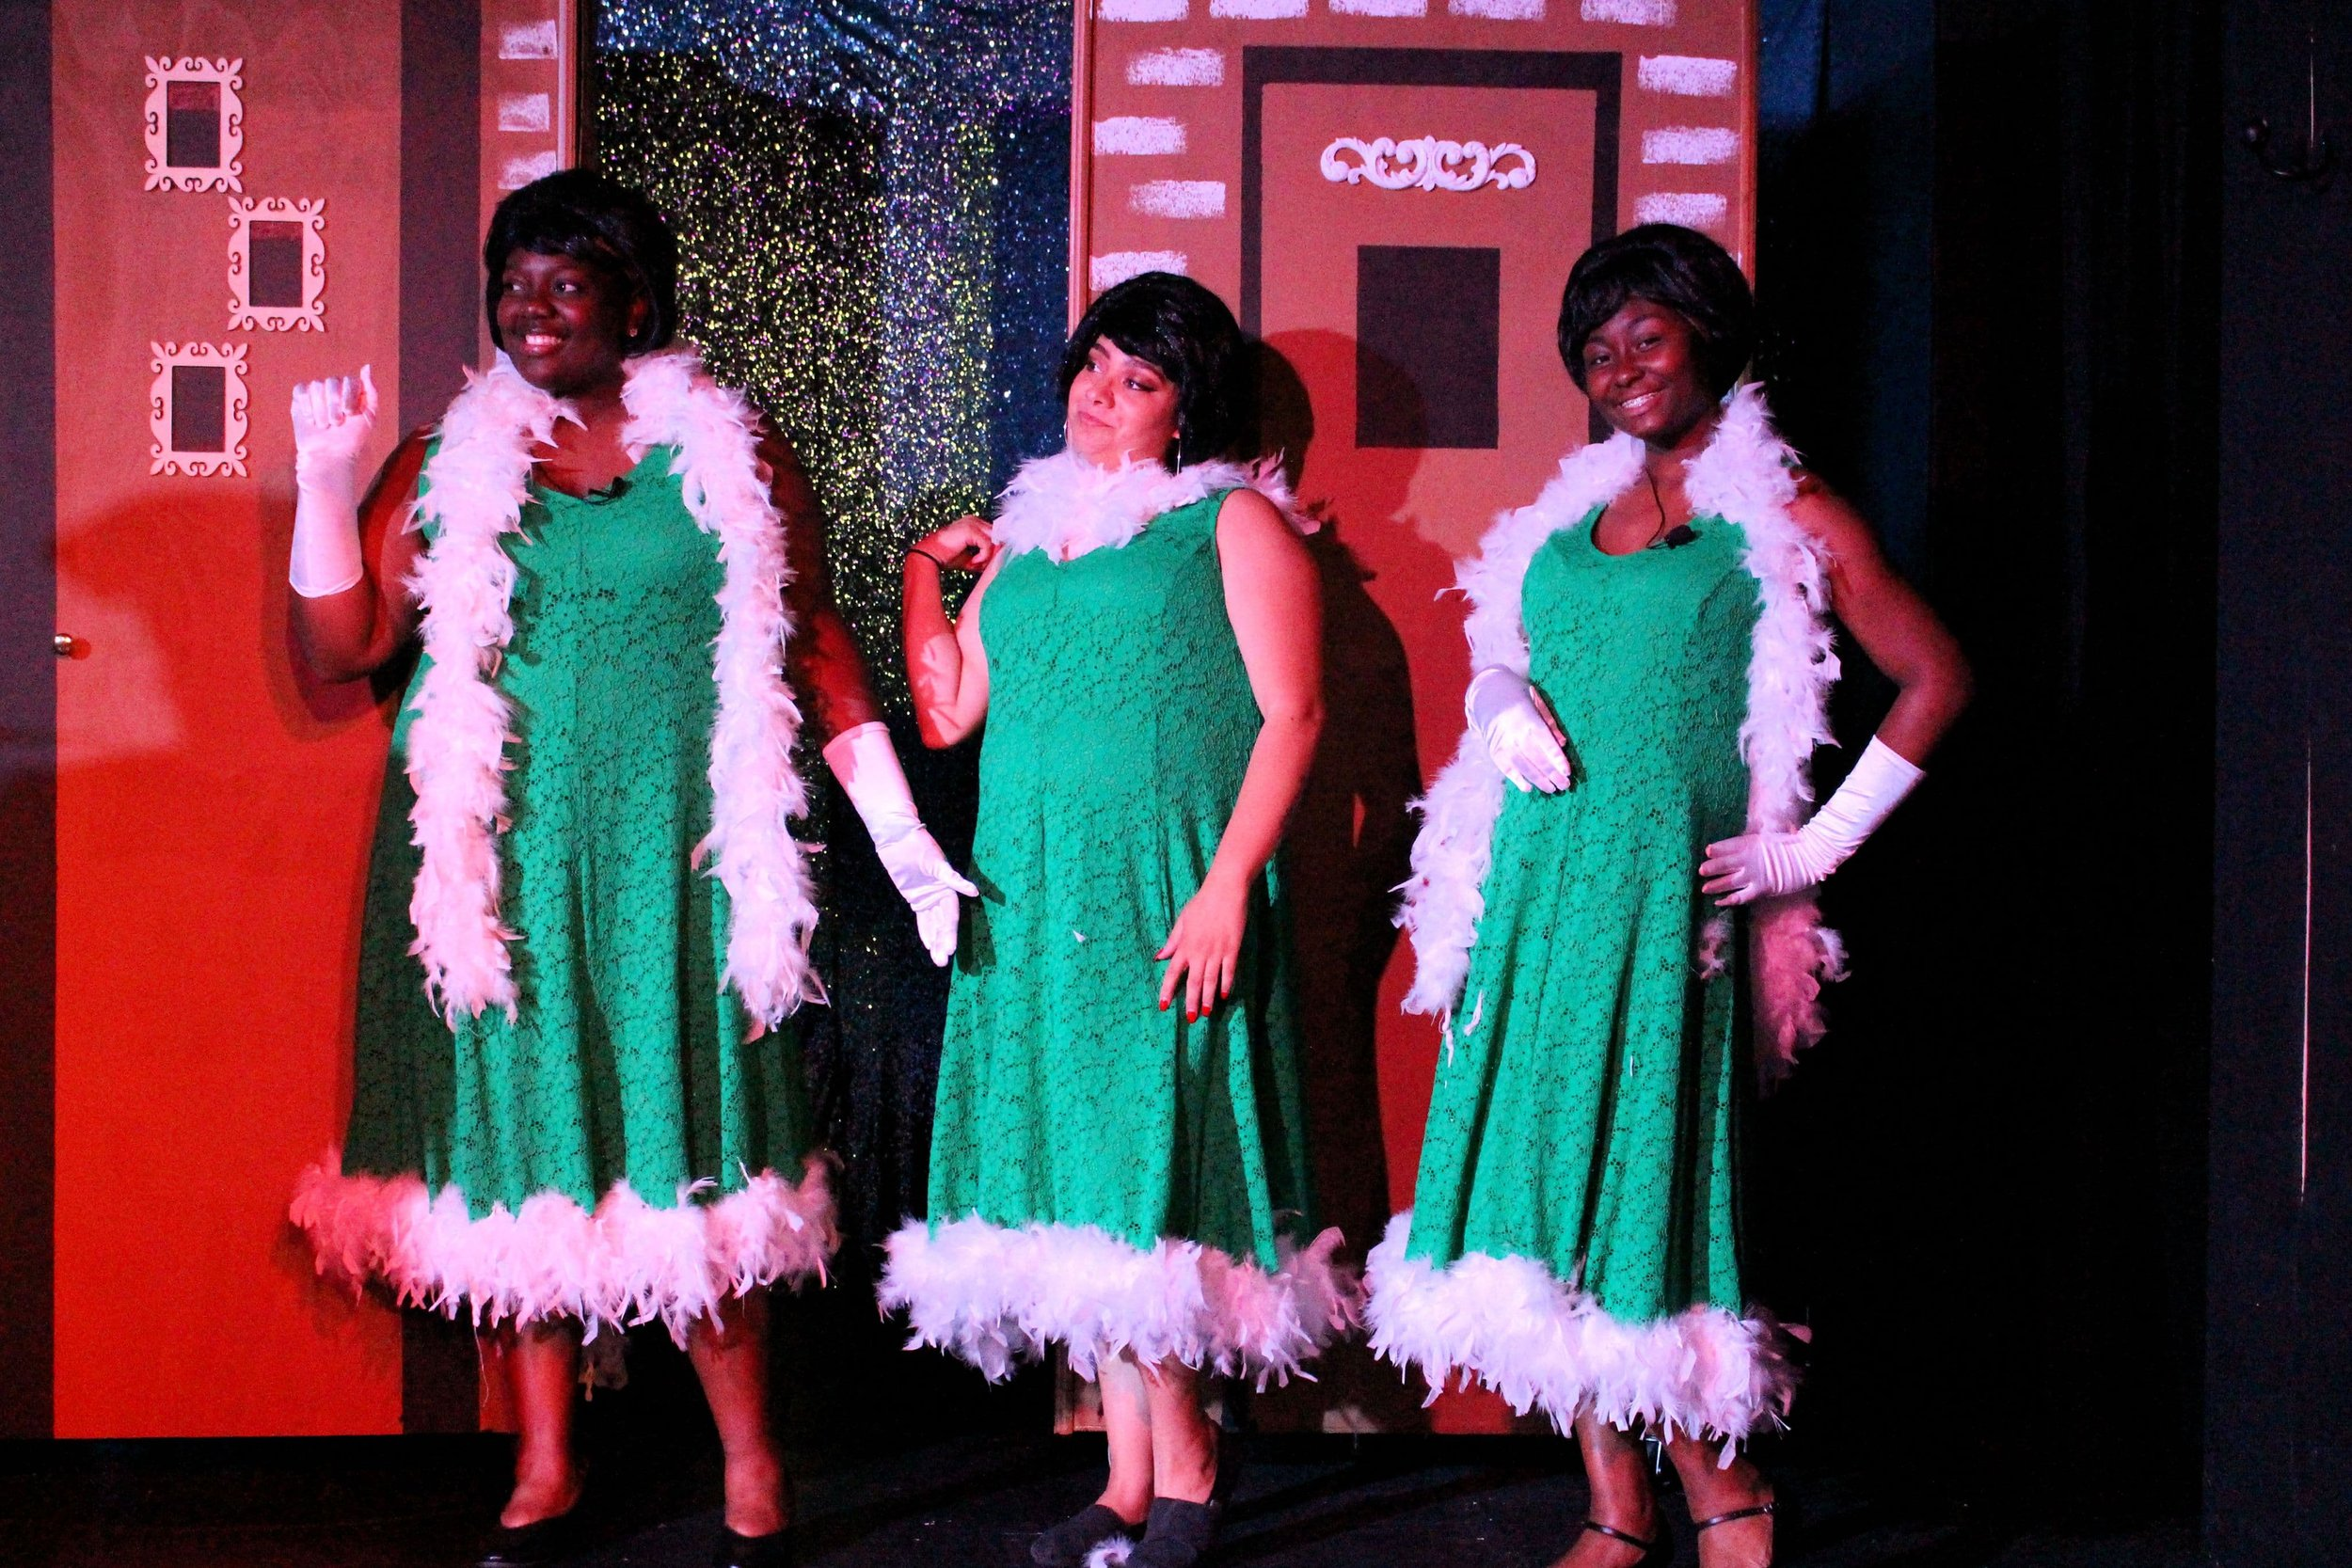 """Charity Gilbert, Laiyah Smith, and Jamila Wicker raise the roof as """"The Dynamites."""""""